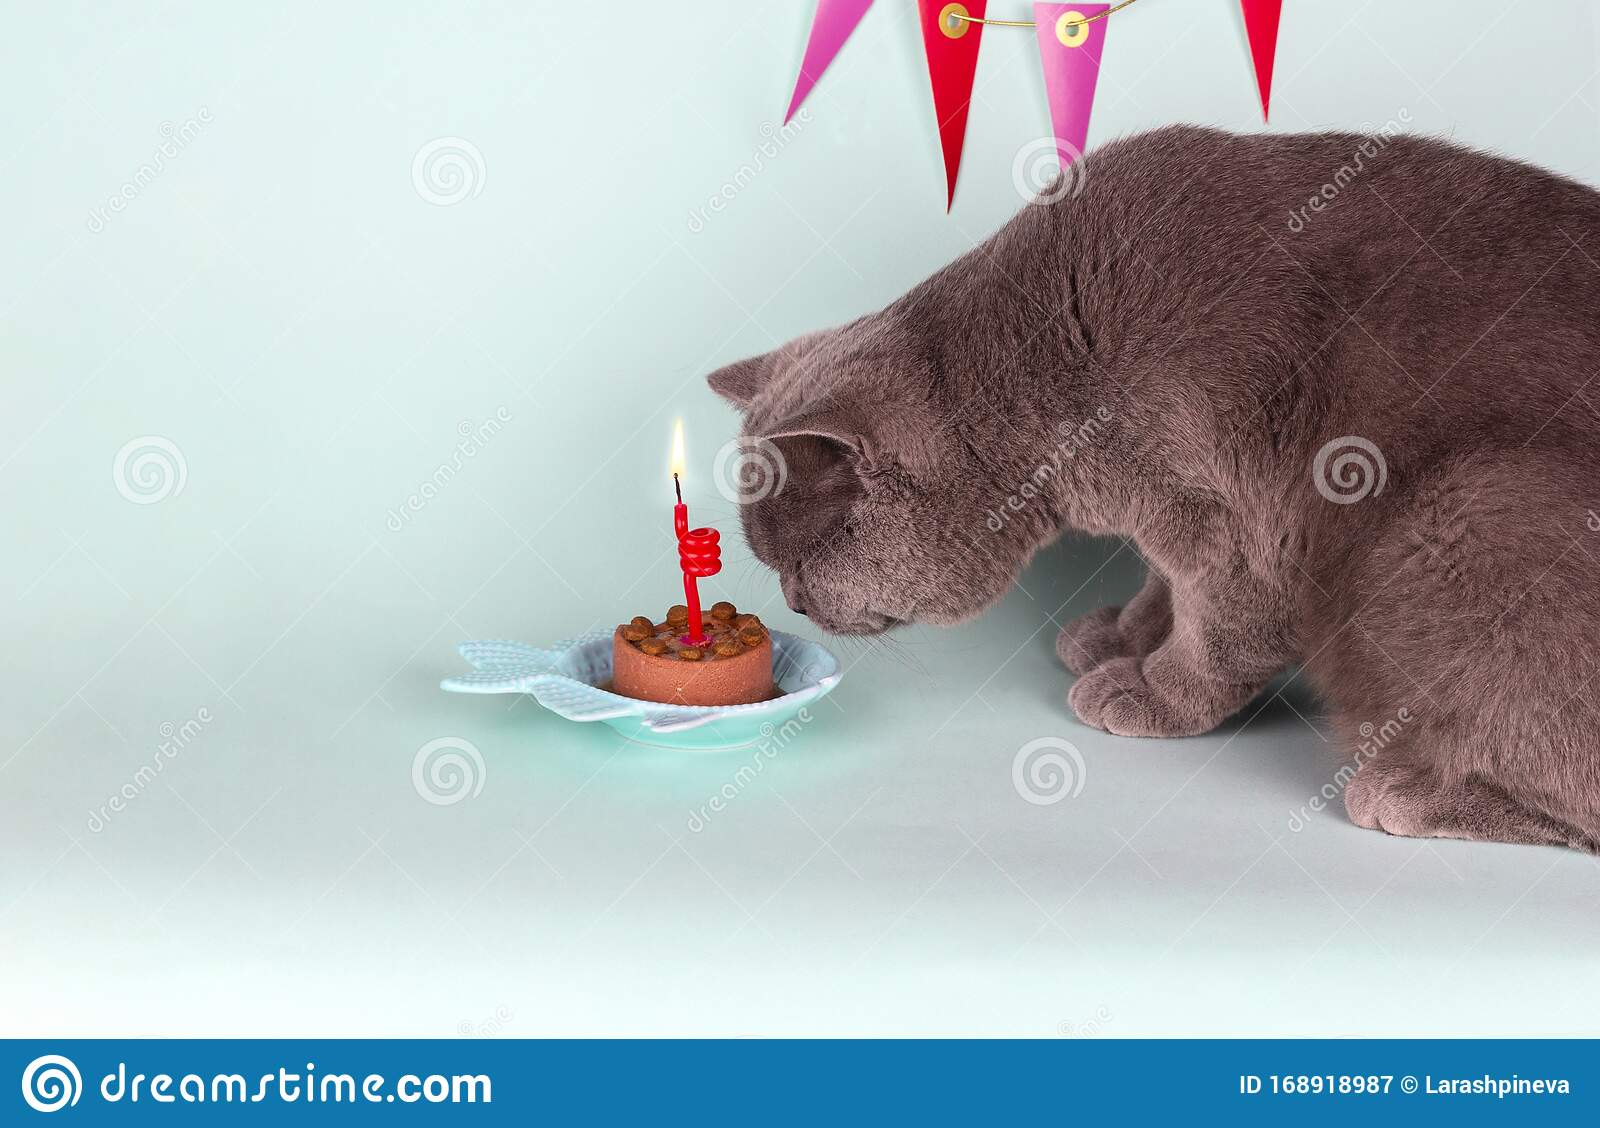 Terrific British Gray Cat Blows Out Candle On Cake On Light Blue Background Funny Birthday Cards Online Ioscodamsfinfo